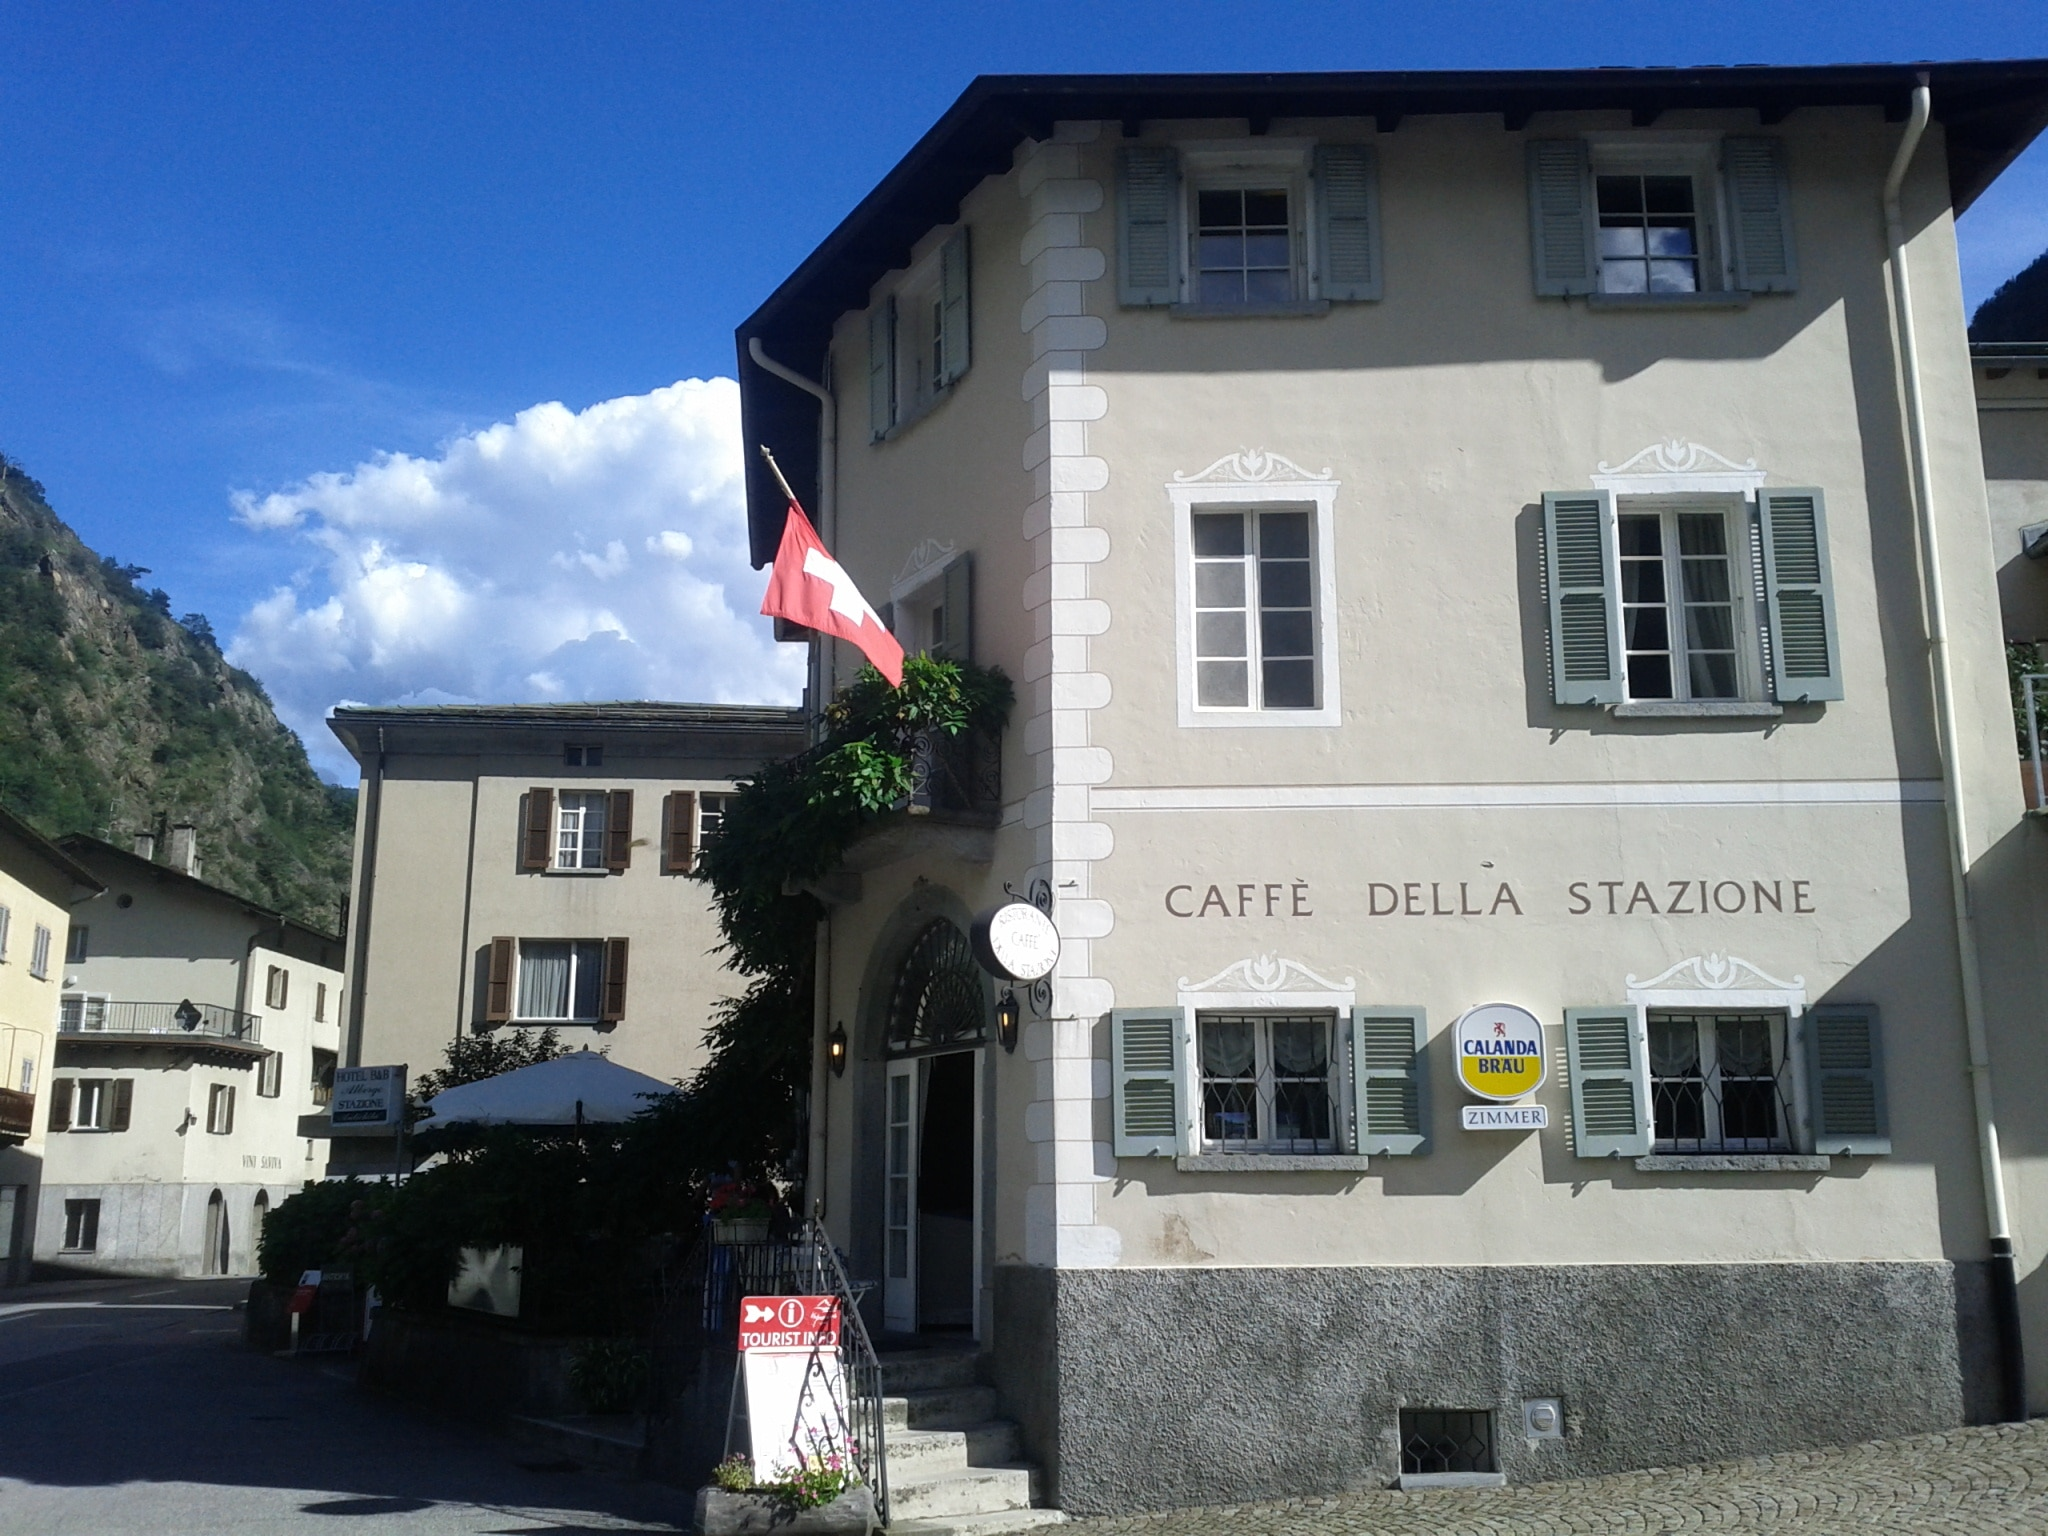 The boutique bed and breakfast hotel, Albergo della Stazione, where I rested before climbing up toward Bernina.